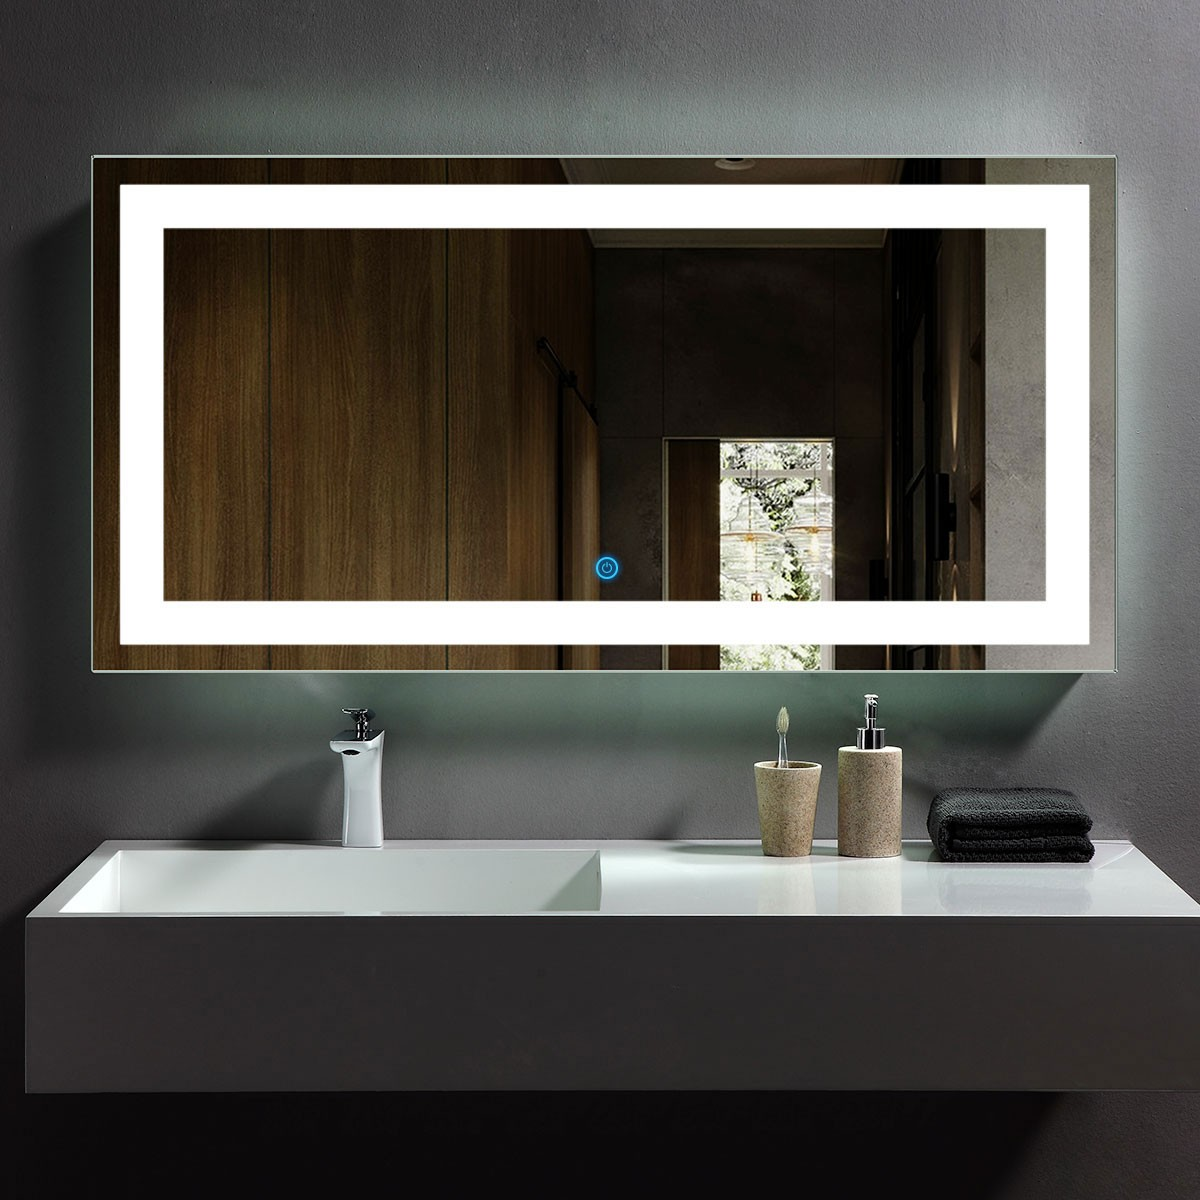 48 x 24 In Horizontal LED Bathroom Mirror with Touch Button (DK-OD-CK010-E)